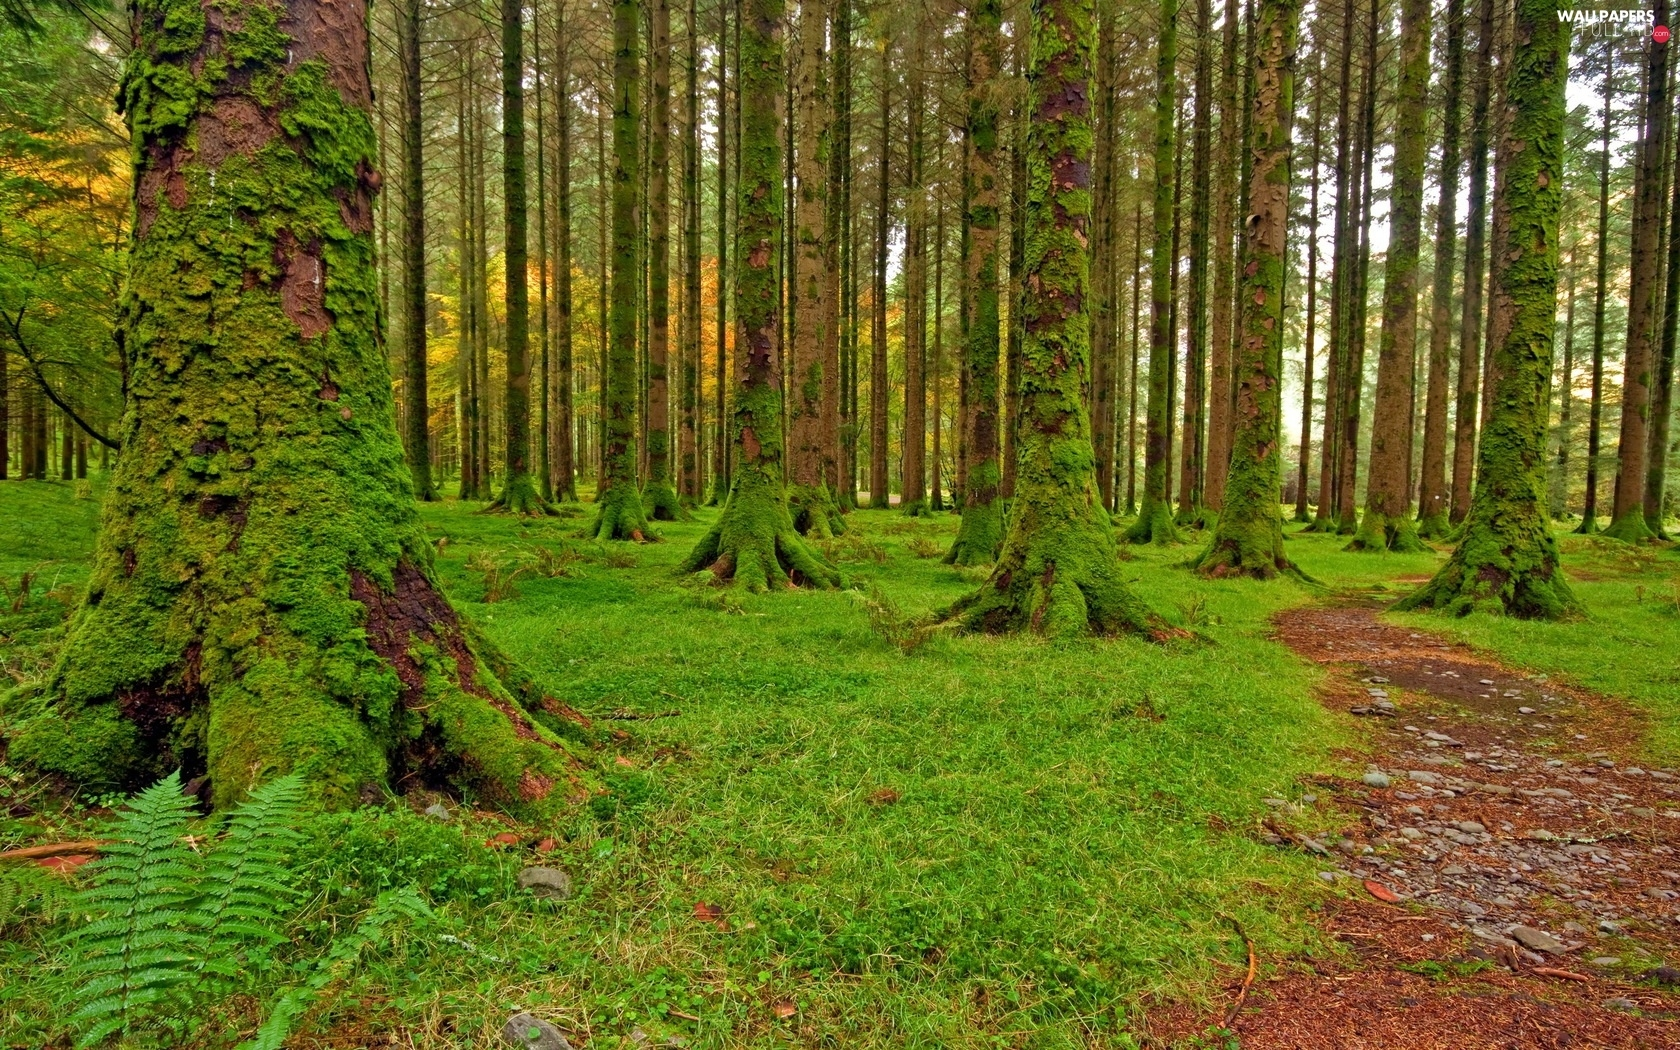 Moss, viewes, forest, grass, trees